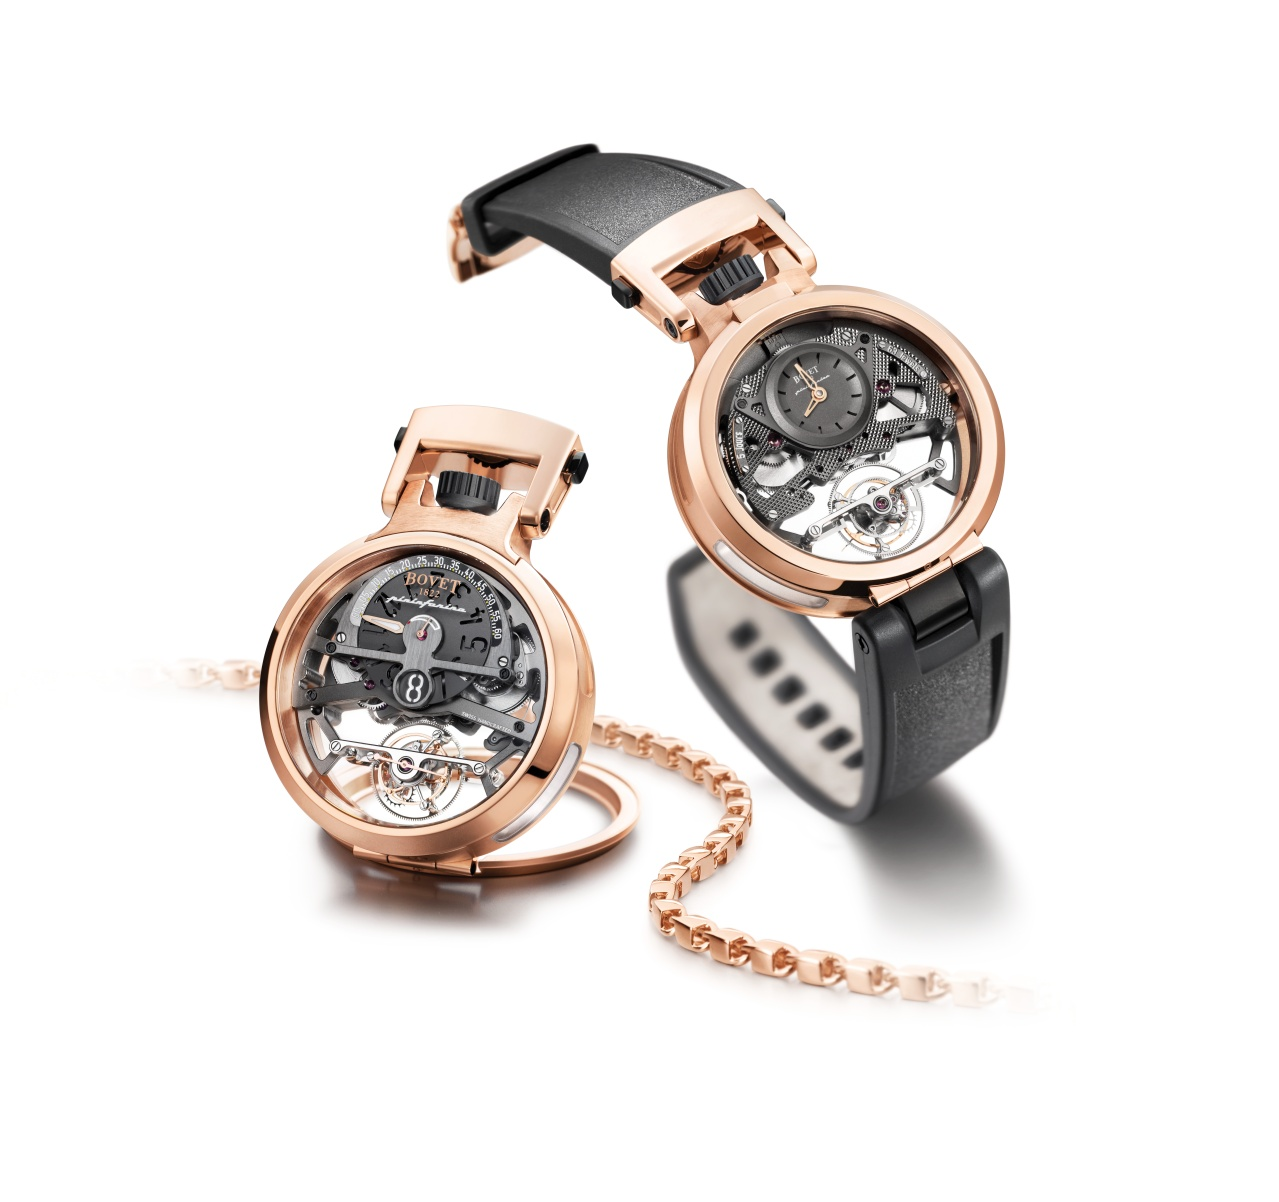 Bovet Watch   BOVET by Pininfarina   Ref. Nr.  TPINT001    Call 312-944-3100  | For Availability